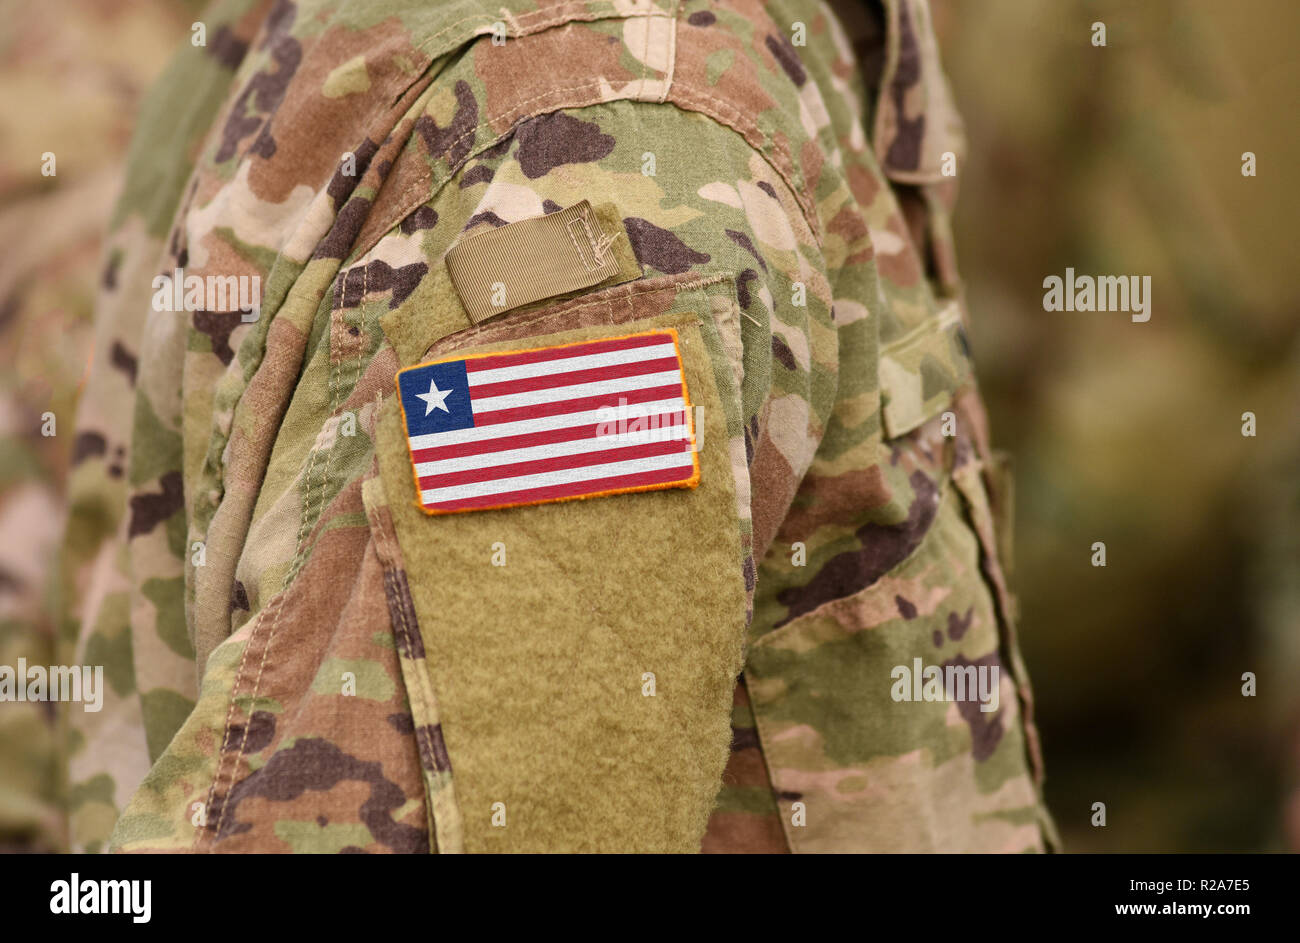 Liberia flag on soldiers arm. Liberia troops (collage) - Stock Image